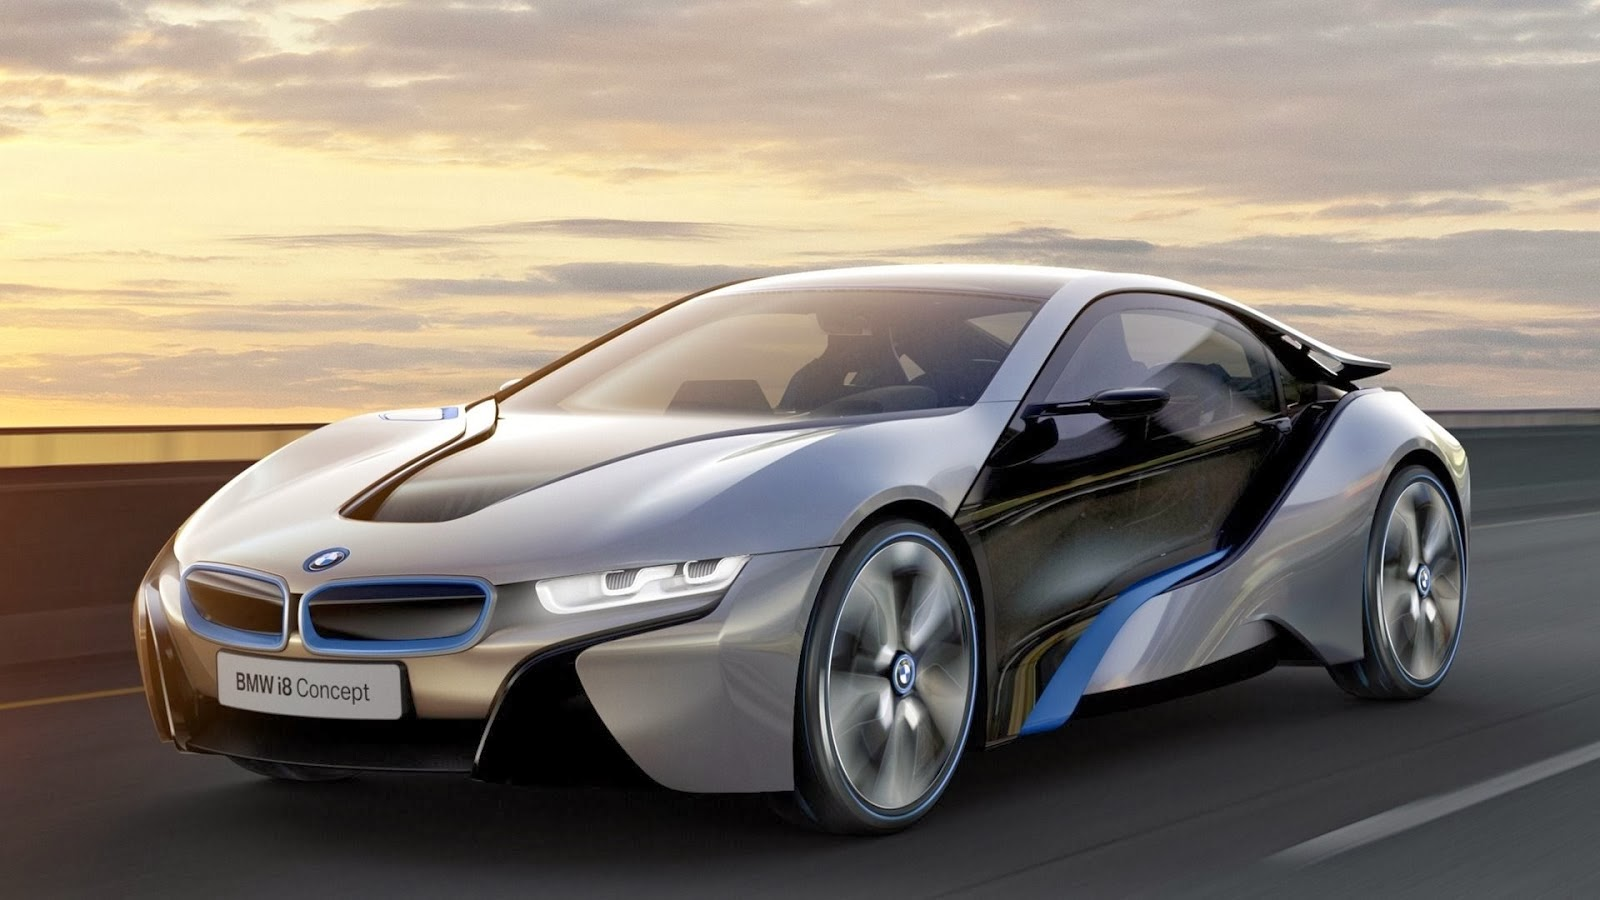 Free Download Bmw I8 Cars Hd Wallpapers 1080p Bmw I8 Cars Hd